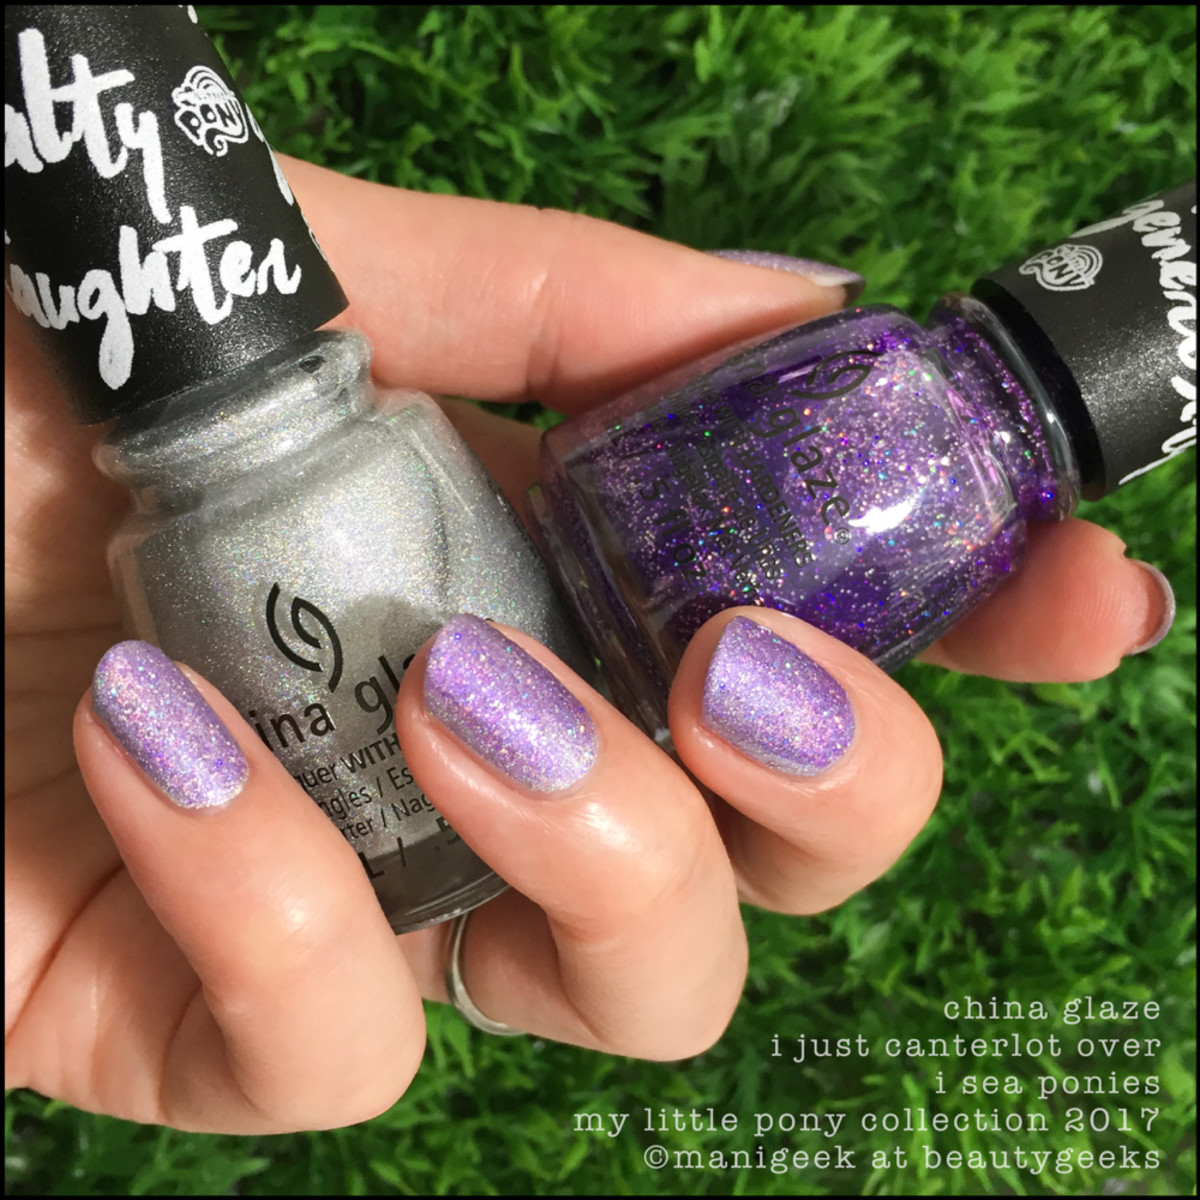 China Glaze I Just Canterlot over I Sea Ponies - My Little Pony Collection 2017